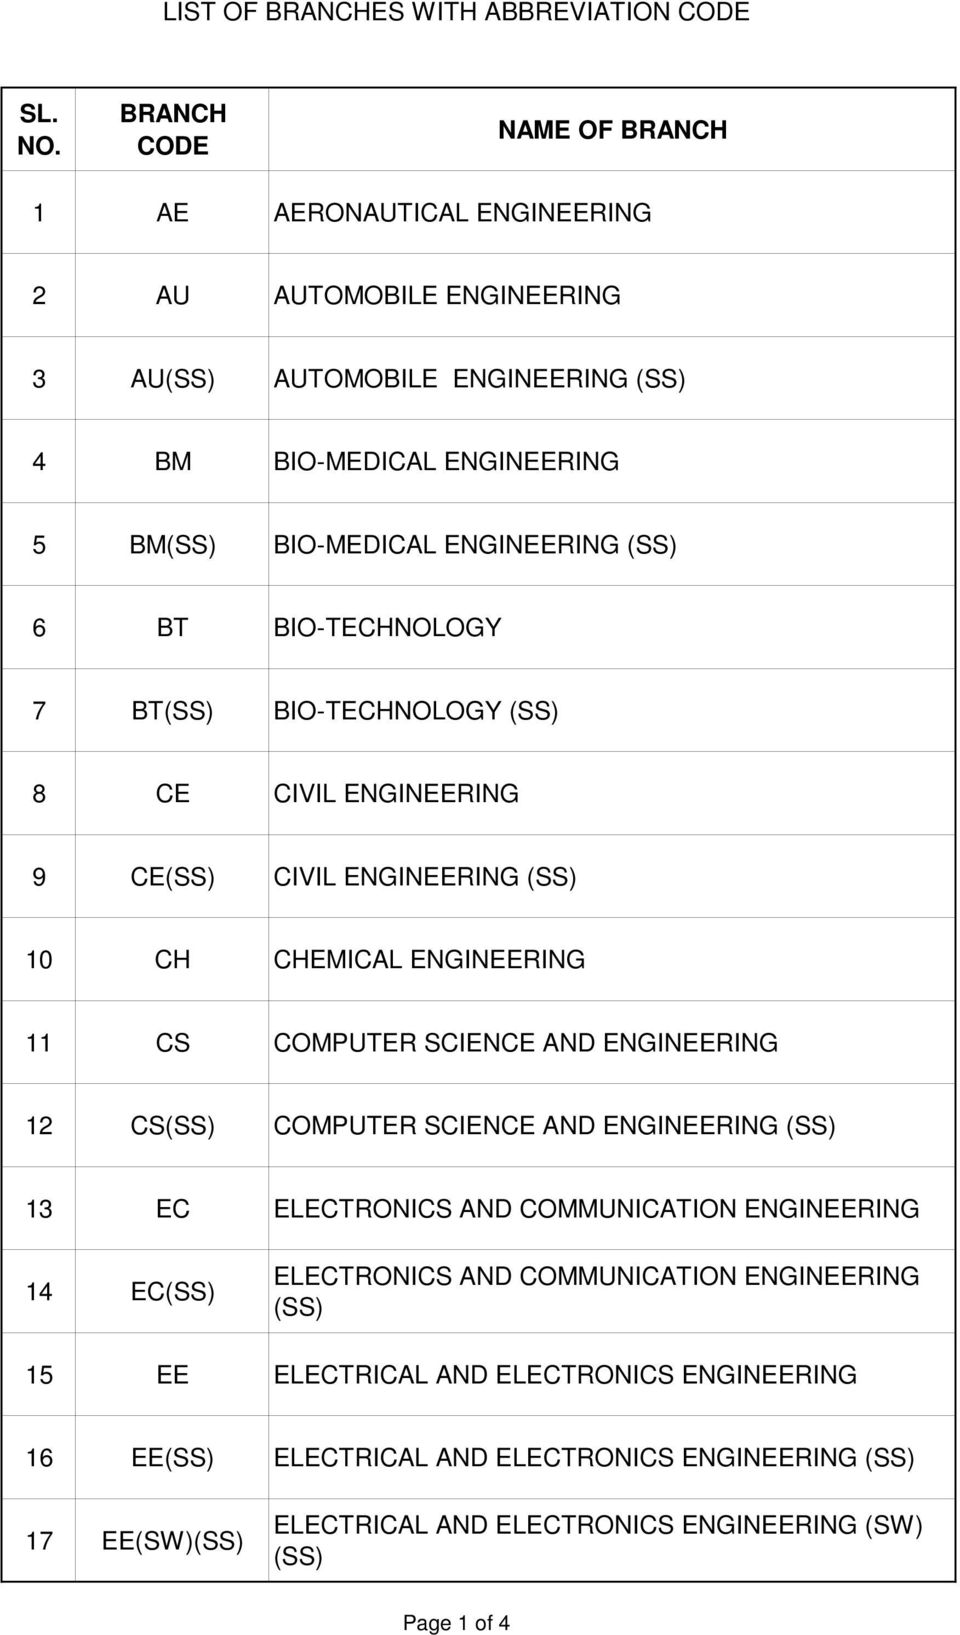 11 CS COMPUTER SCIENCE AND ENGINEERING 12 CS(SS) COMPUTER SCIENCE AND ENGINEERING (SS) 13 EC ELECTRONICS AND COMMUNICATION ENGINEERING 14 EC(SS) ELECTRONICS AND COMMUNICATION